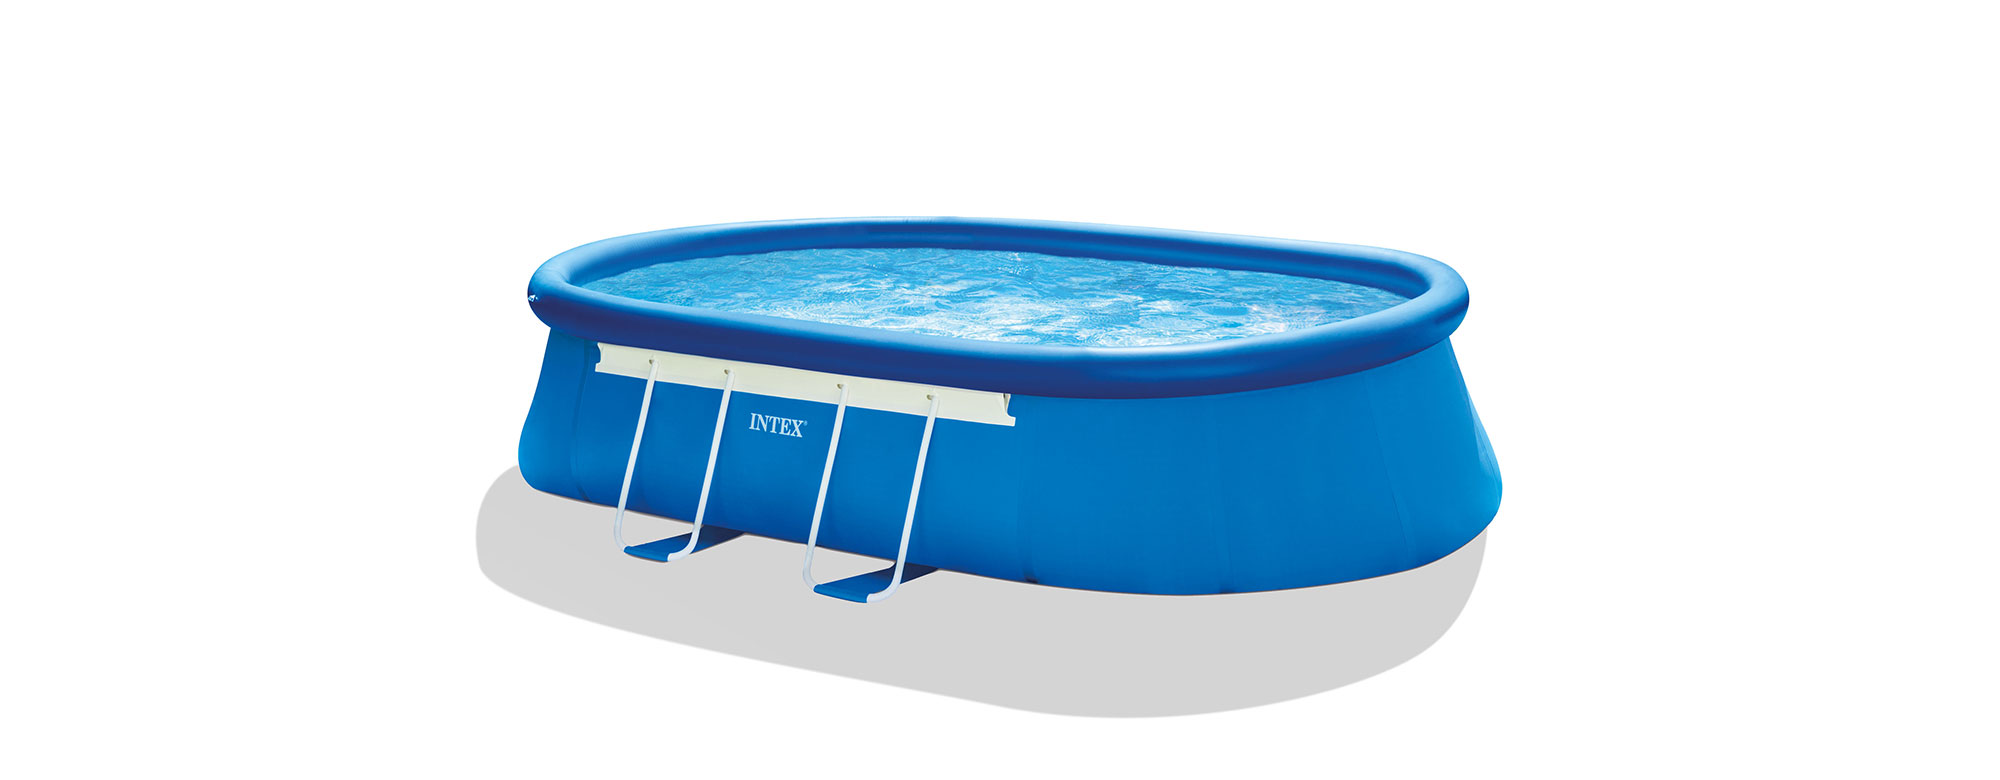 Installer ma piscine Ellipse Intex